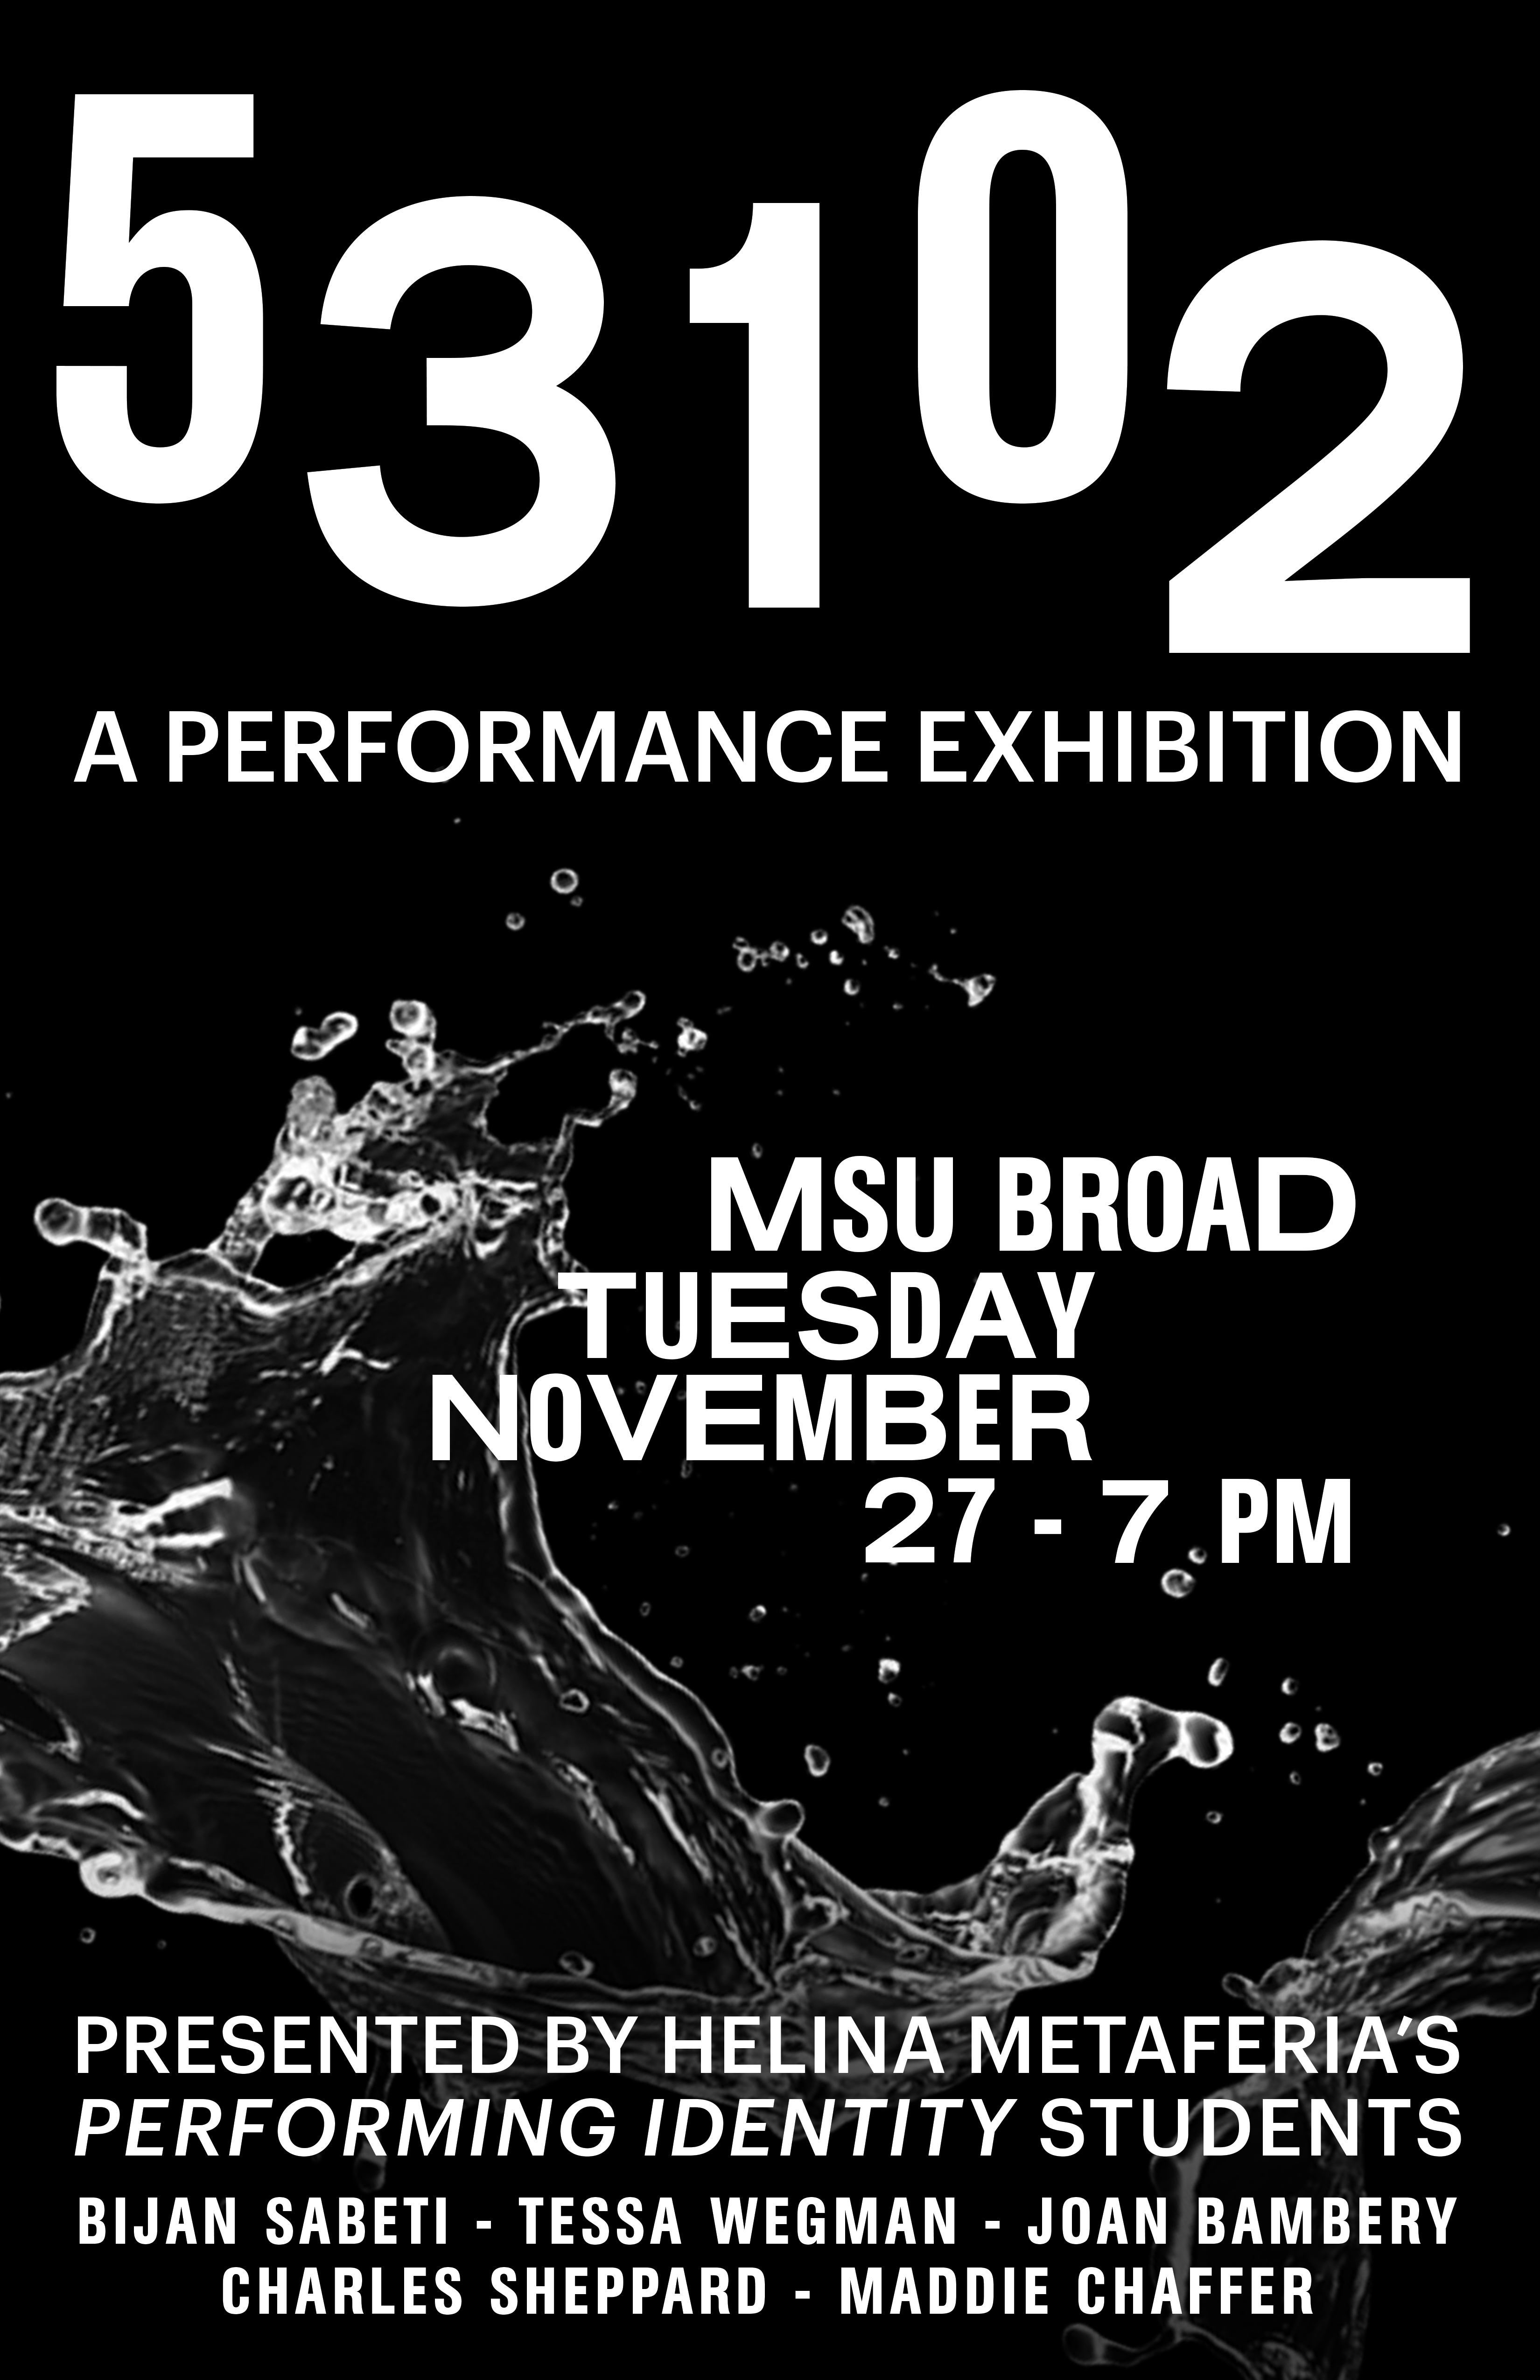 53102: A Performance Exhibition